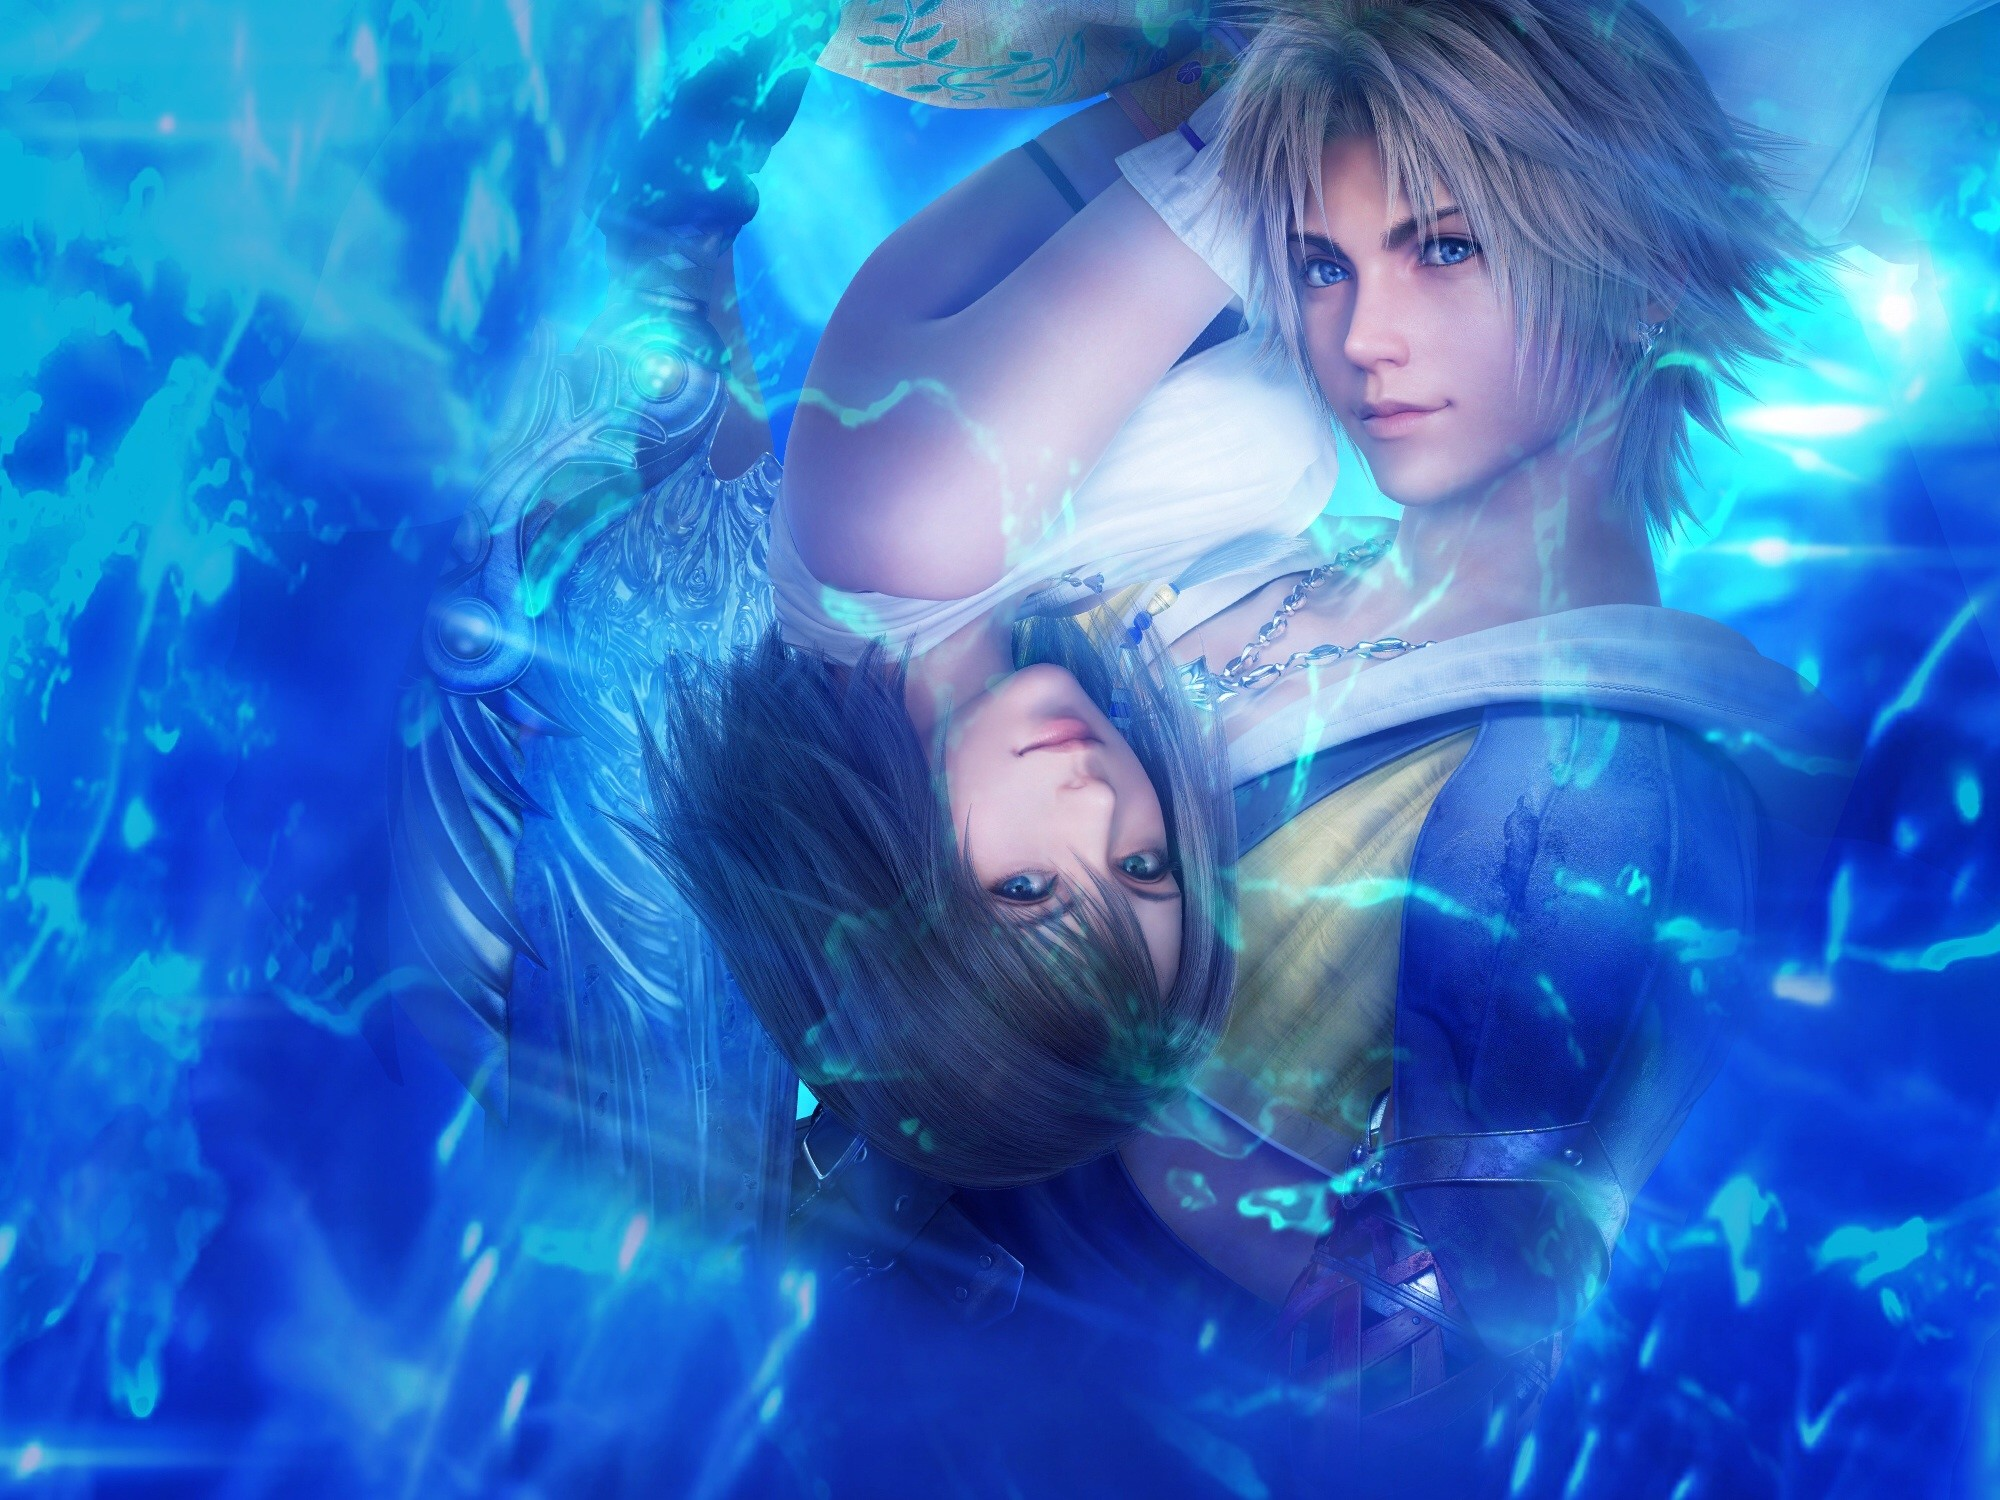 Final Fantasy X Wallpapers HD